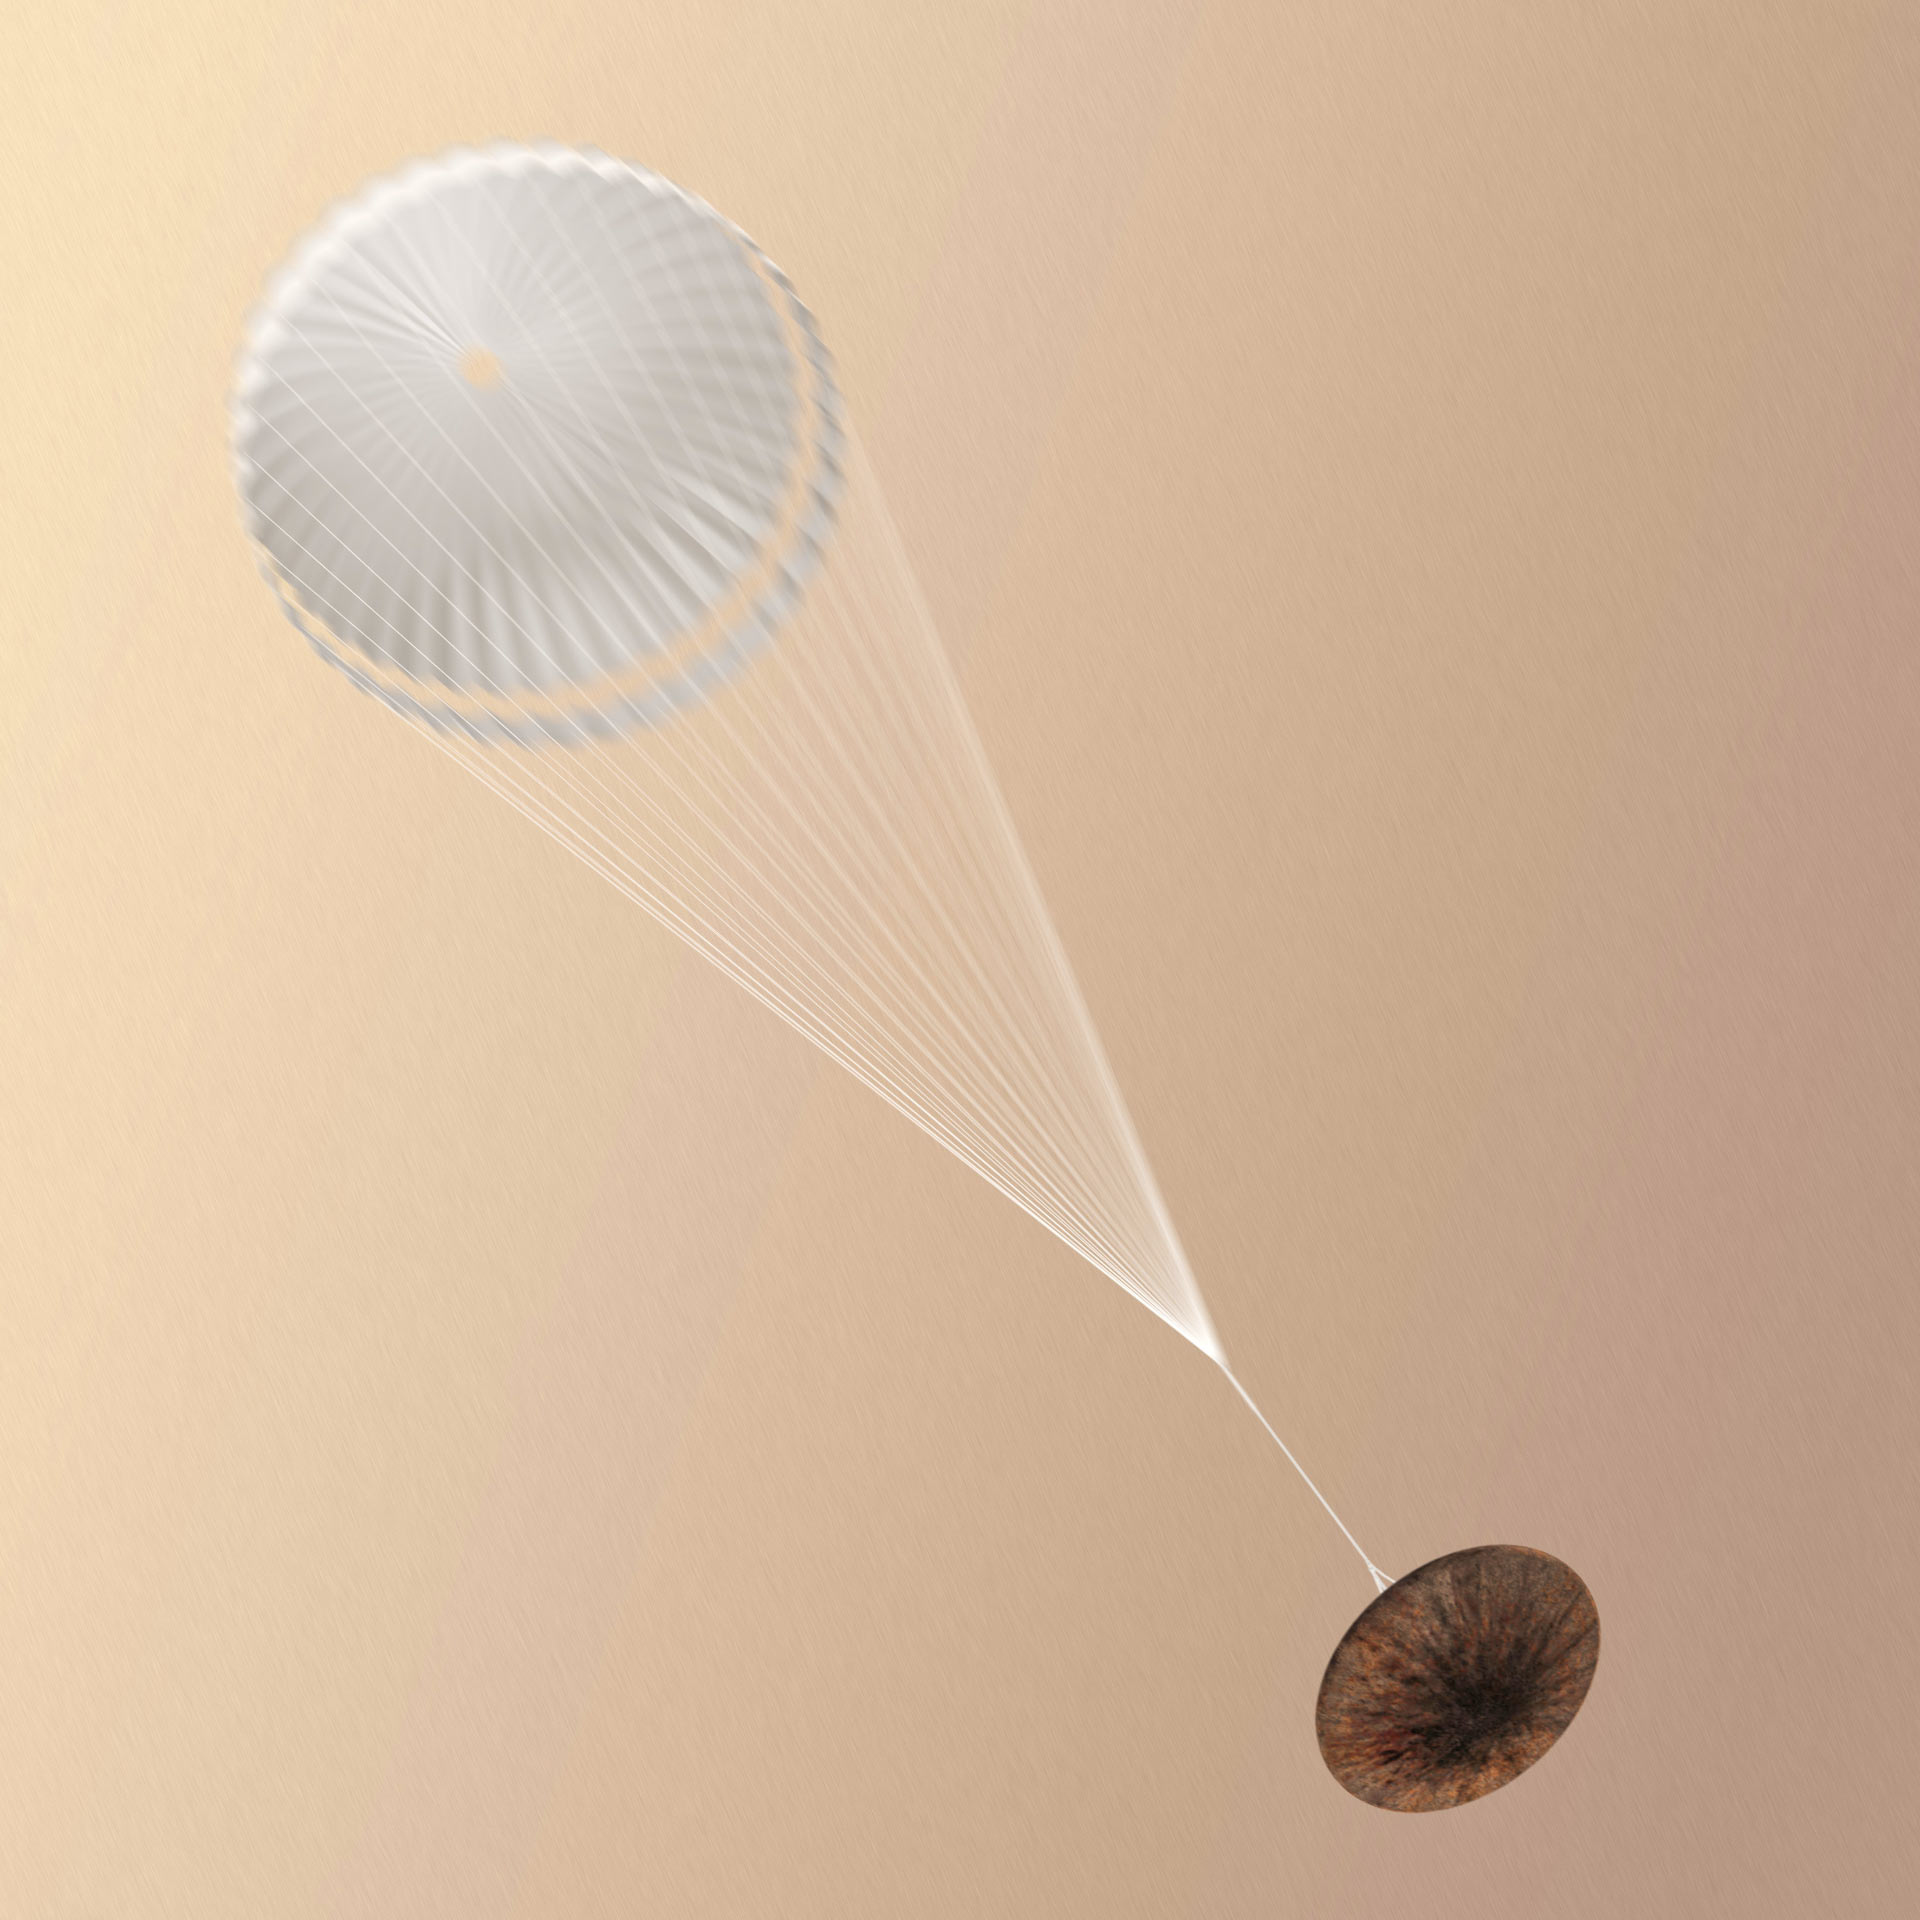 Europe's Mars lander crashed after misjudging altitude